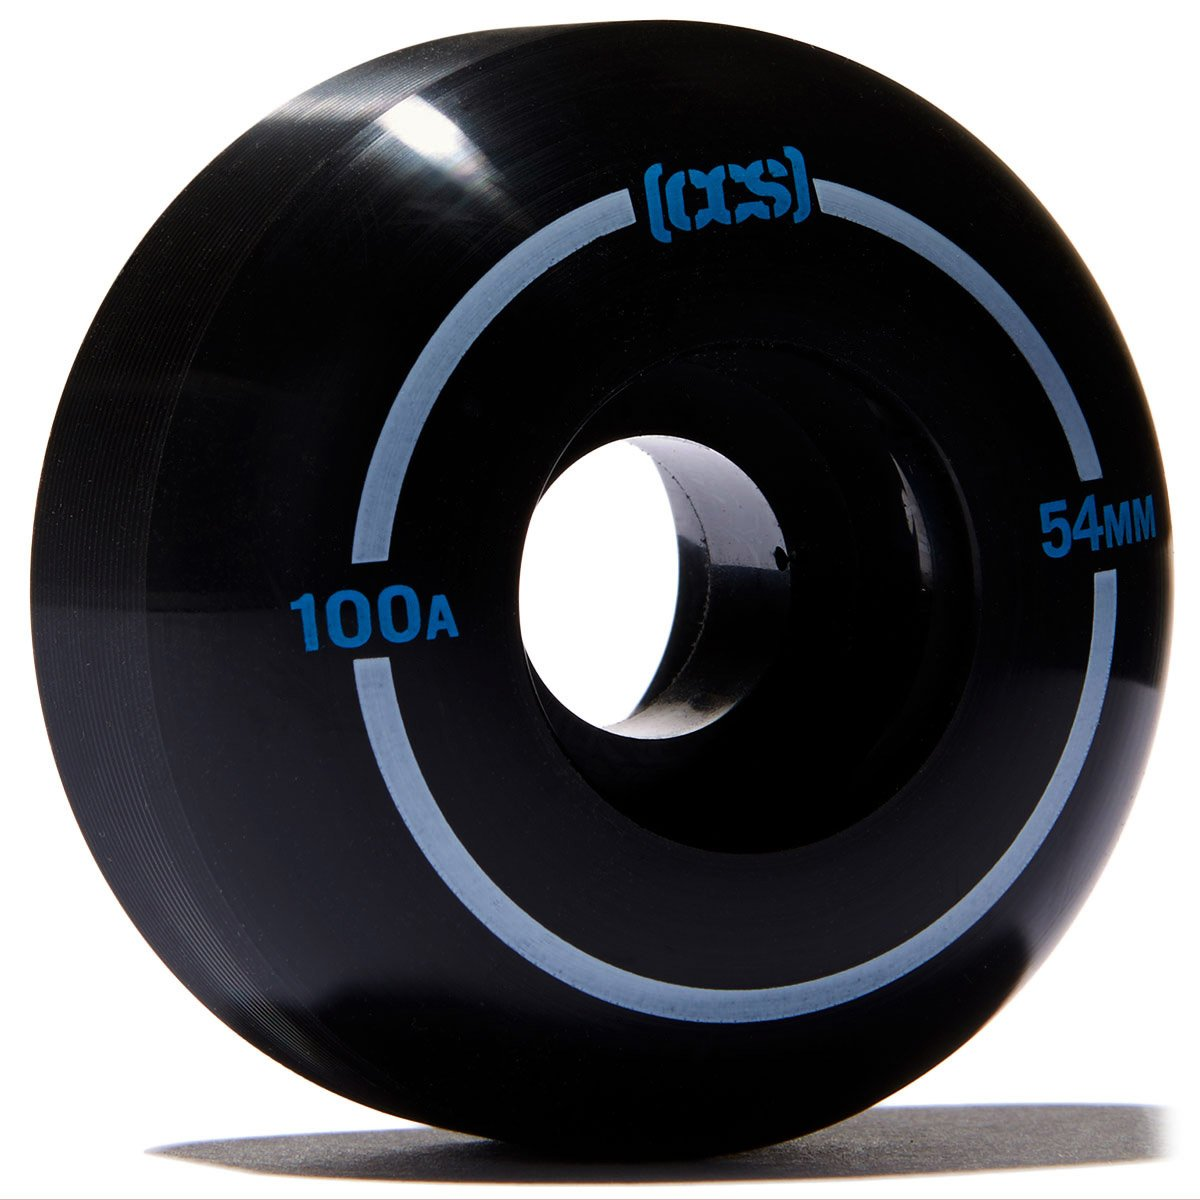 CCS Skateboard Wheels - Multiple Colors (Black, 54mm) by CCS